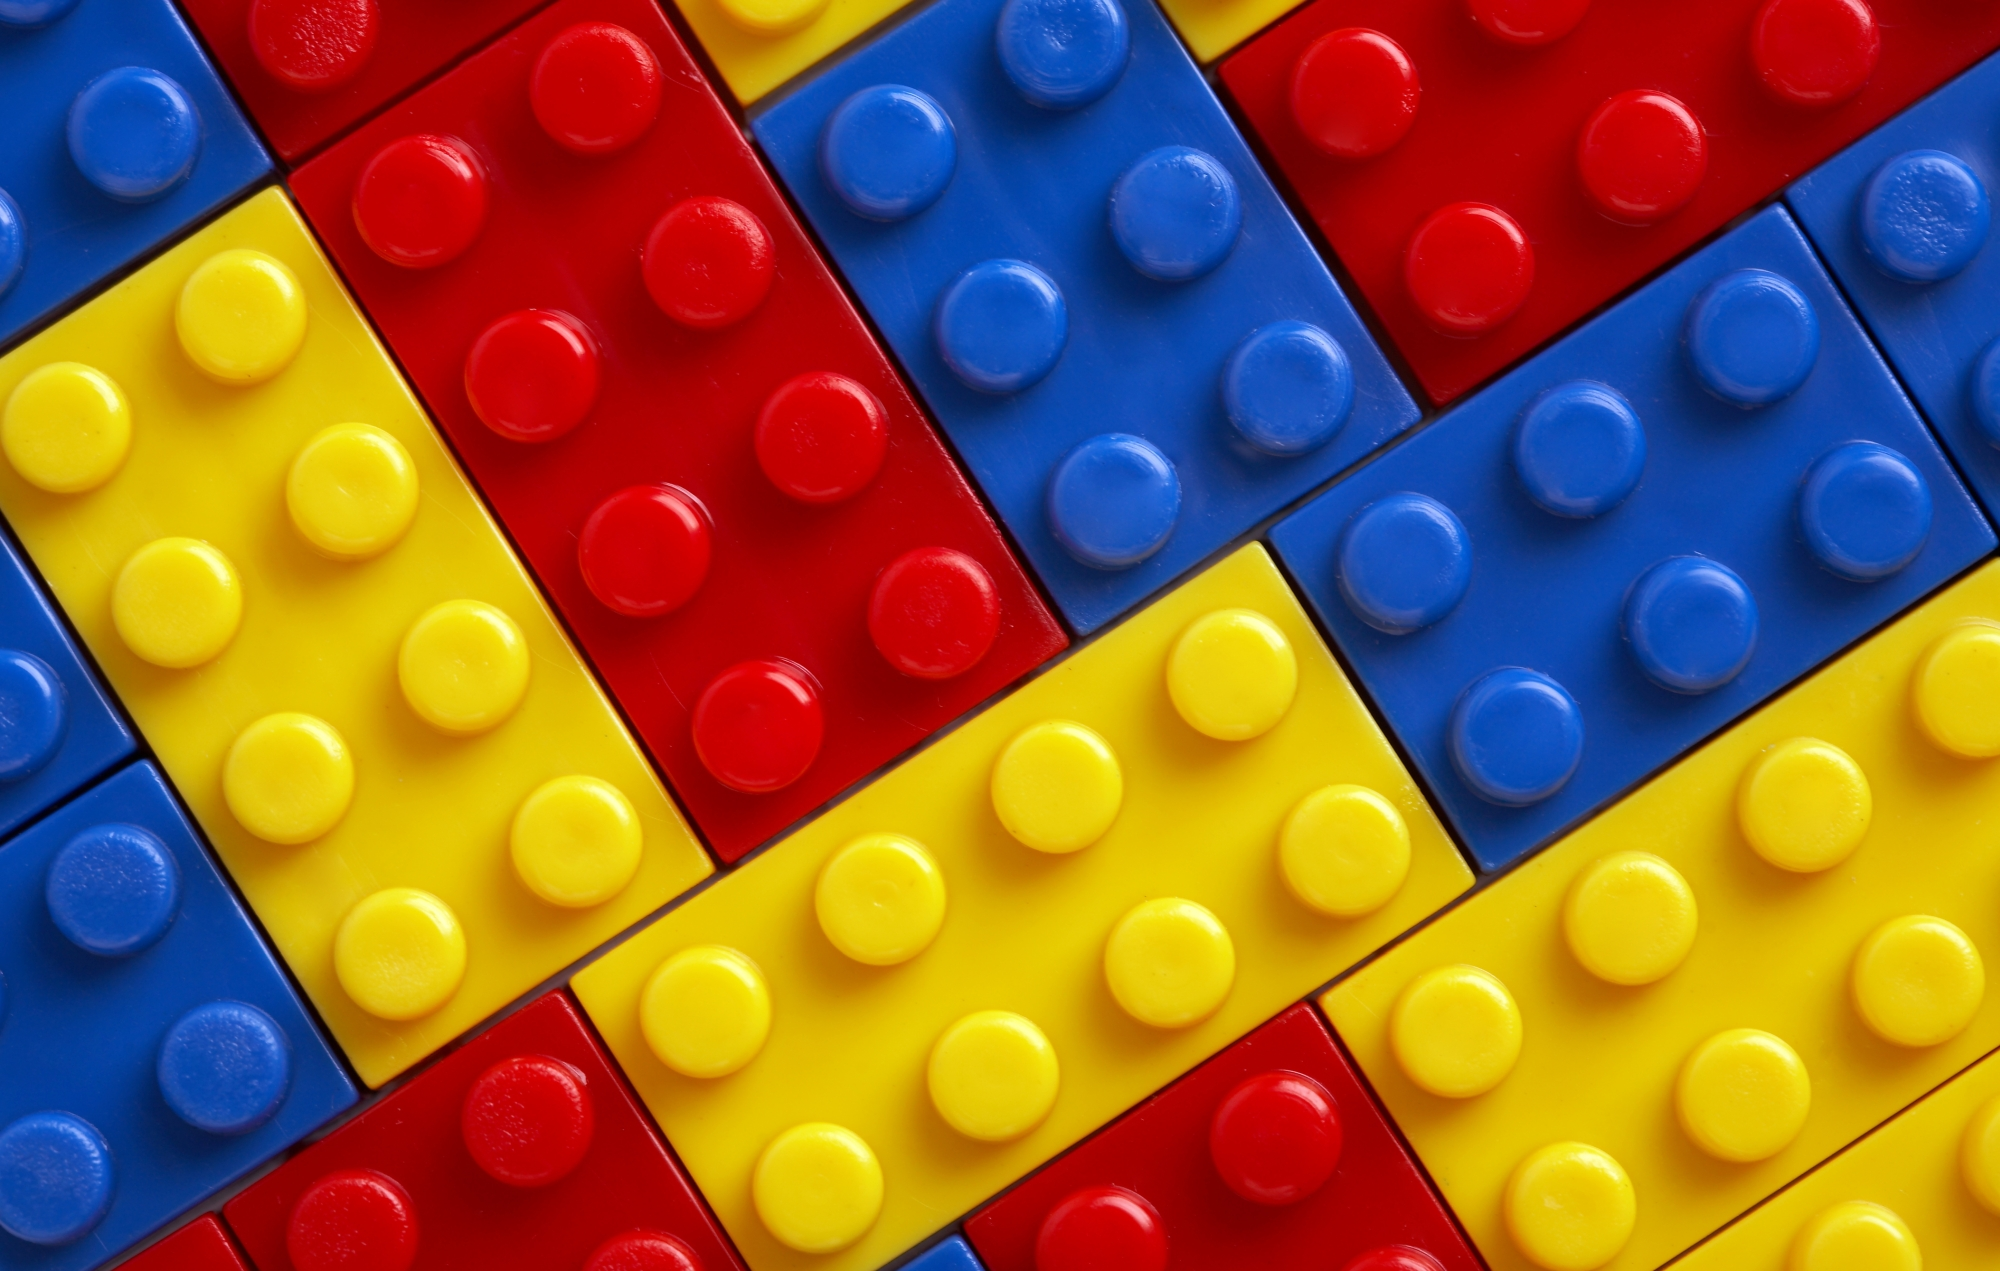 How to implement Block Join Faceting in Solr/Lucene